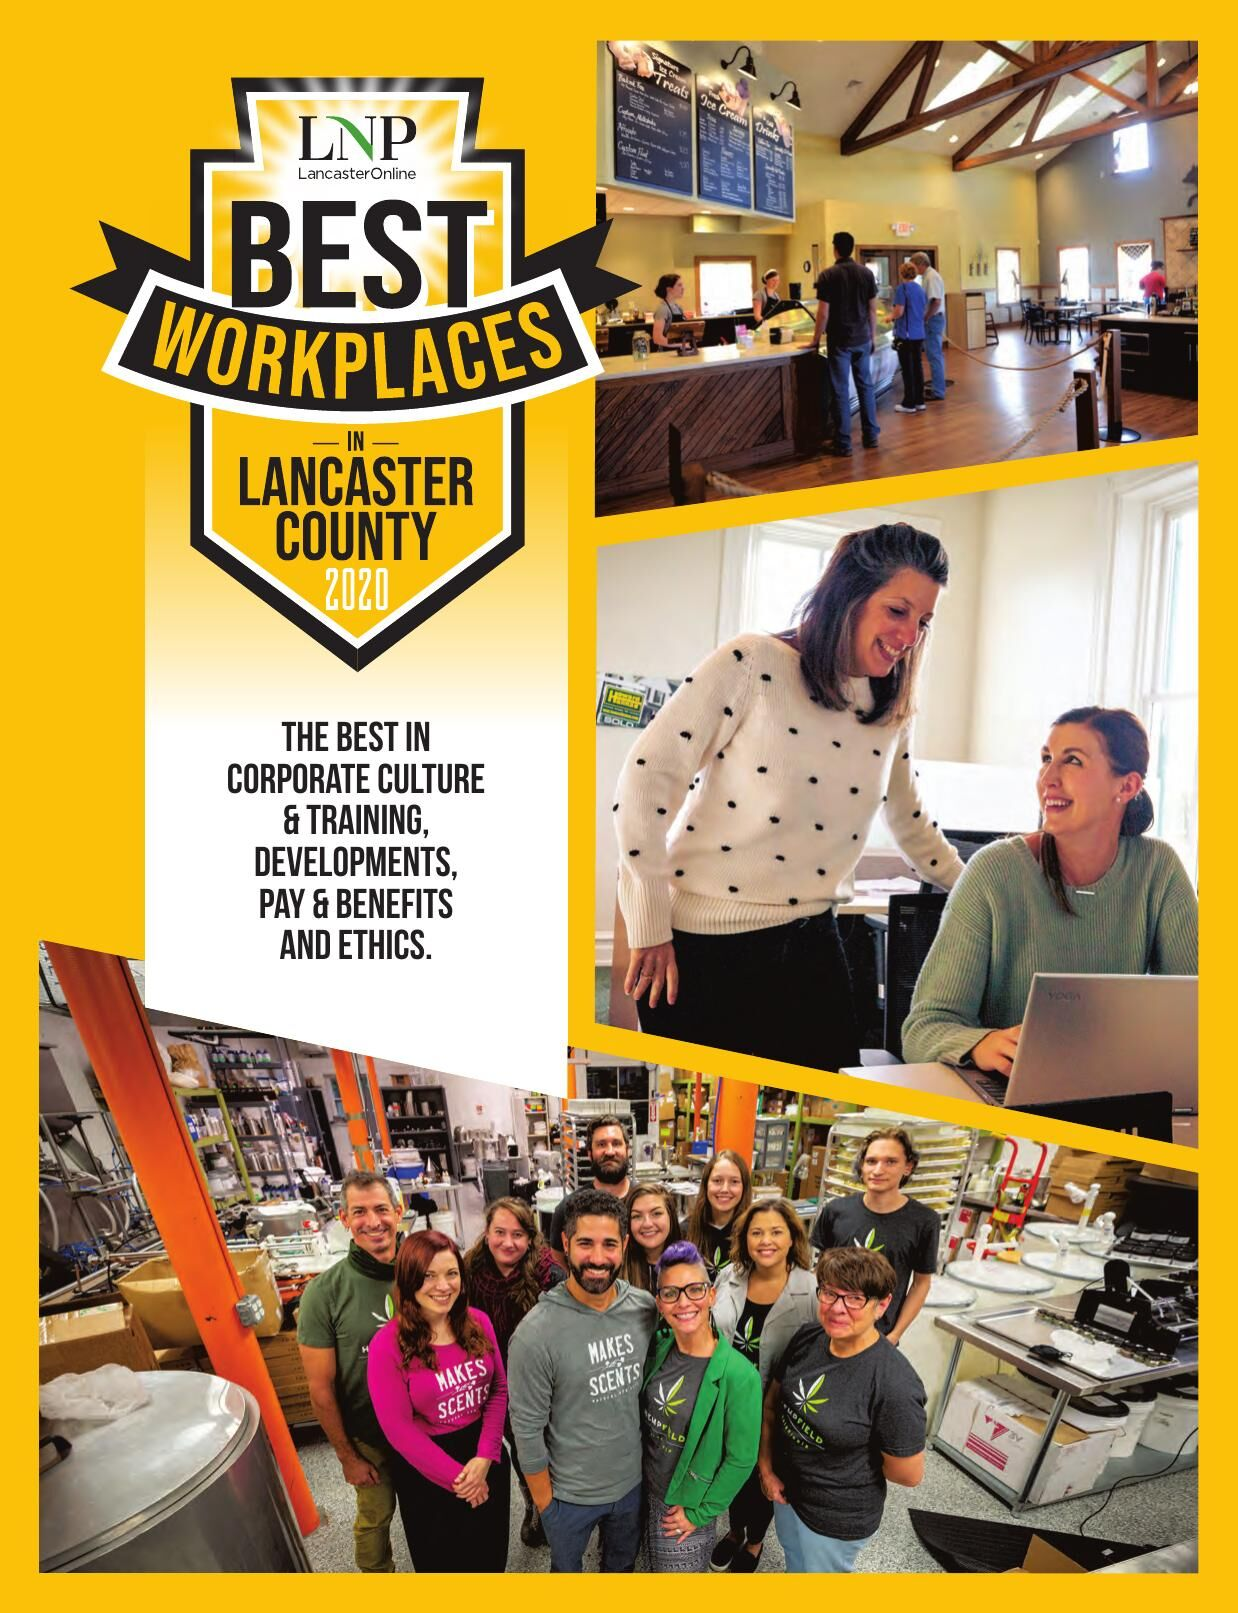 Best Workplaces in Lancaster County 2020